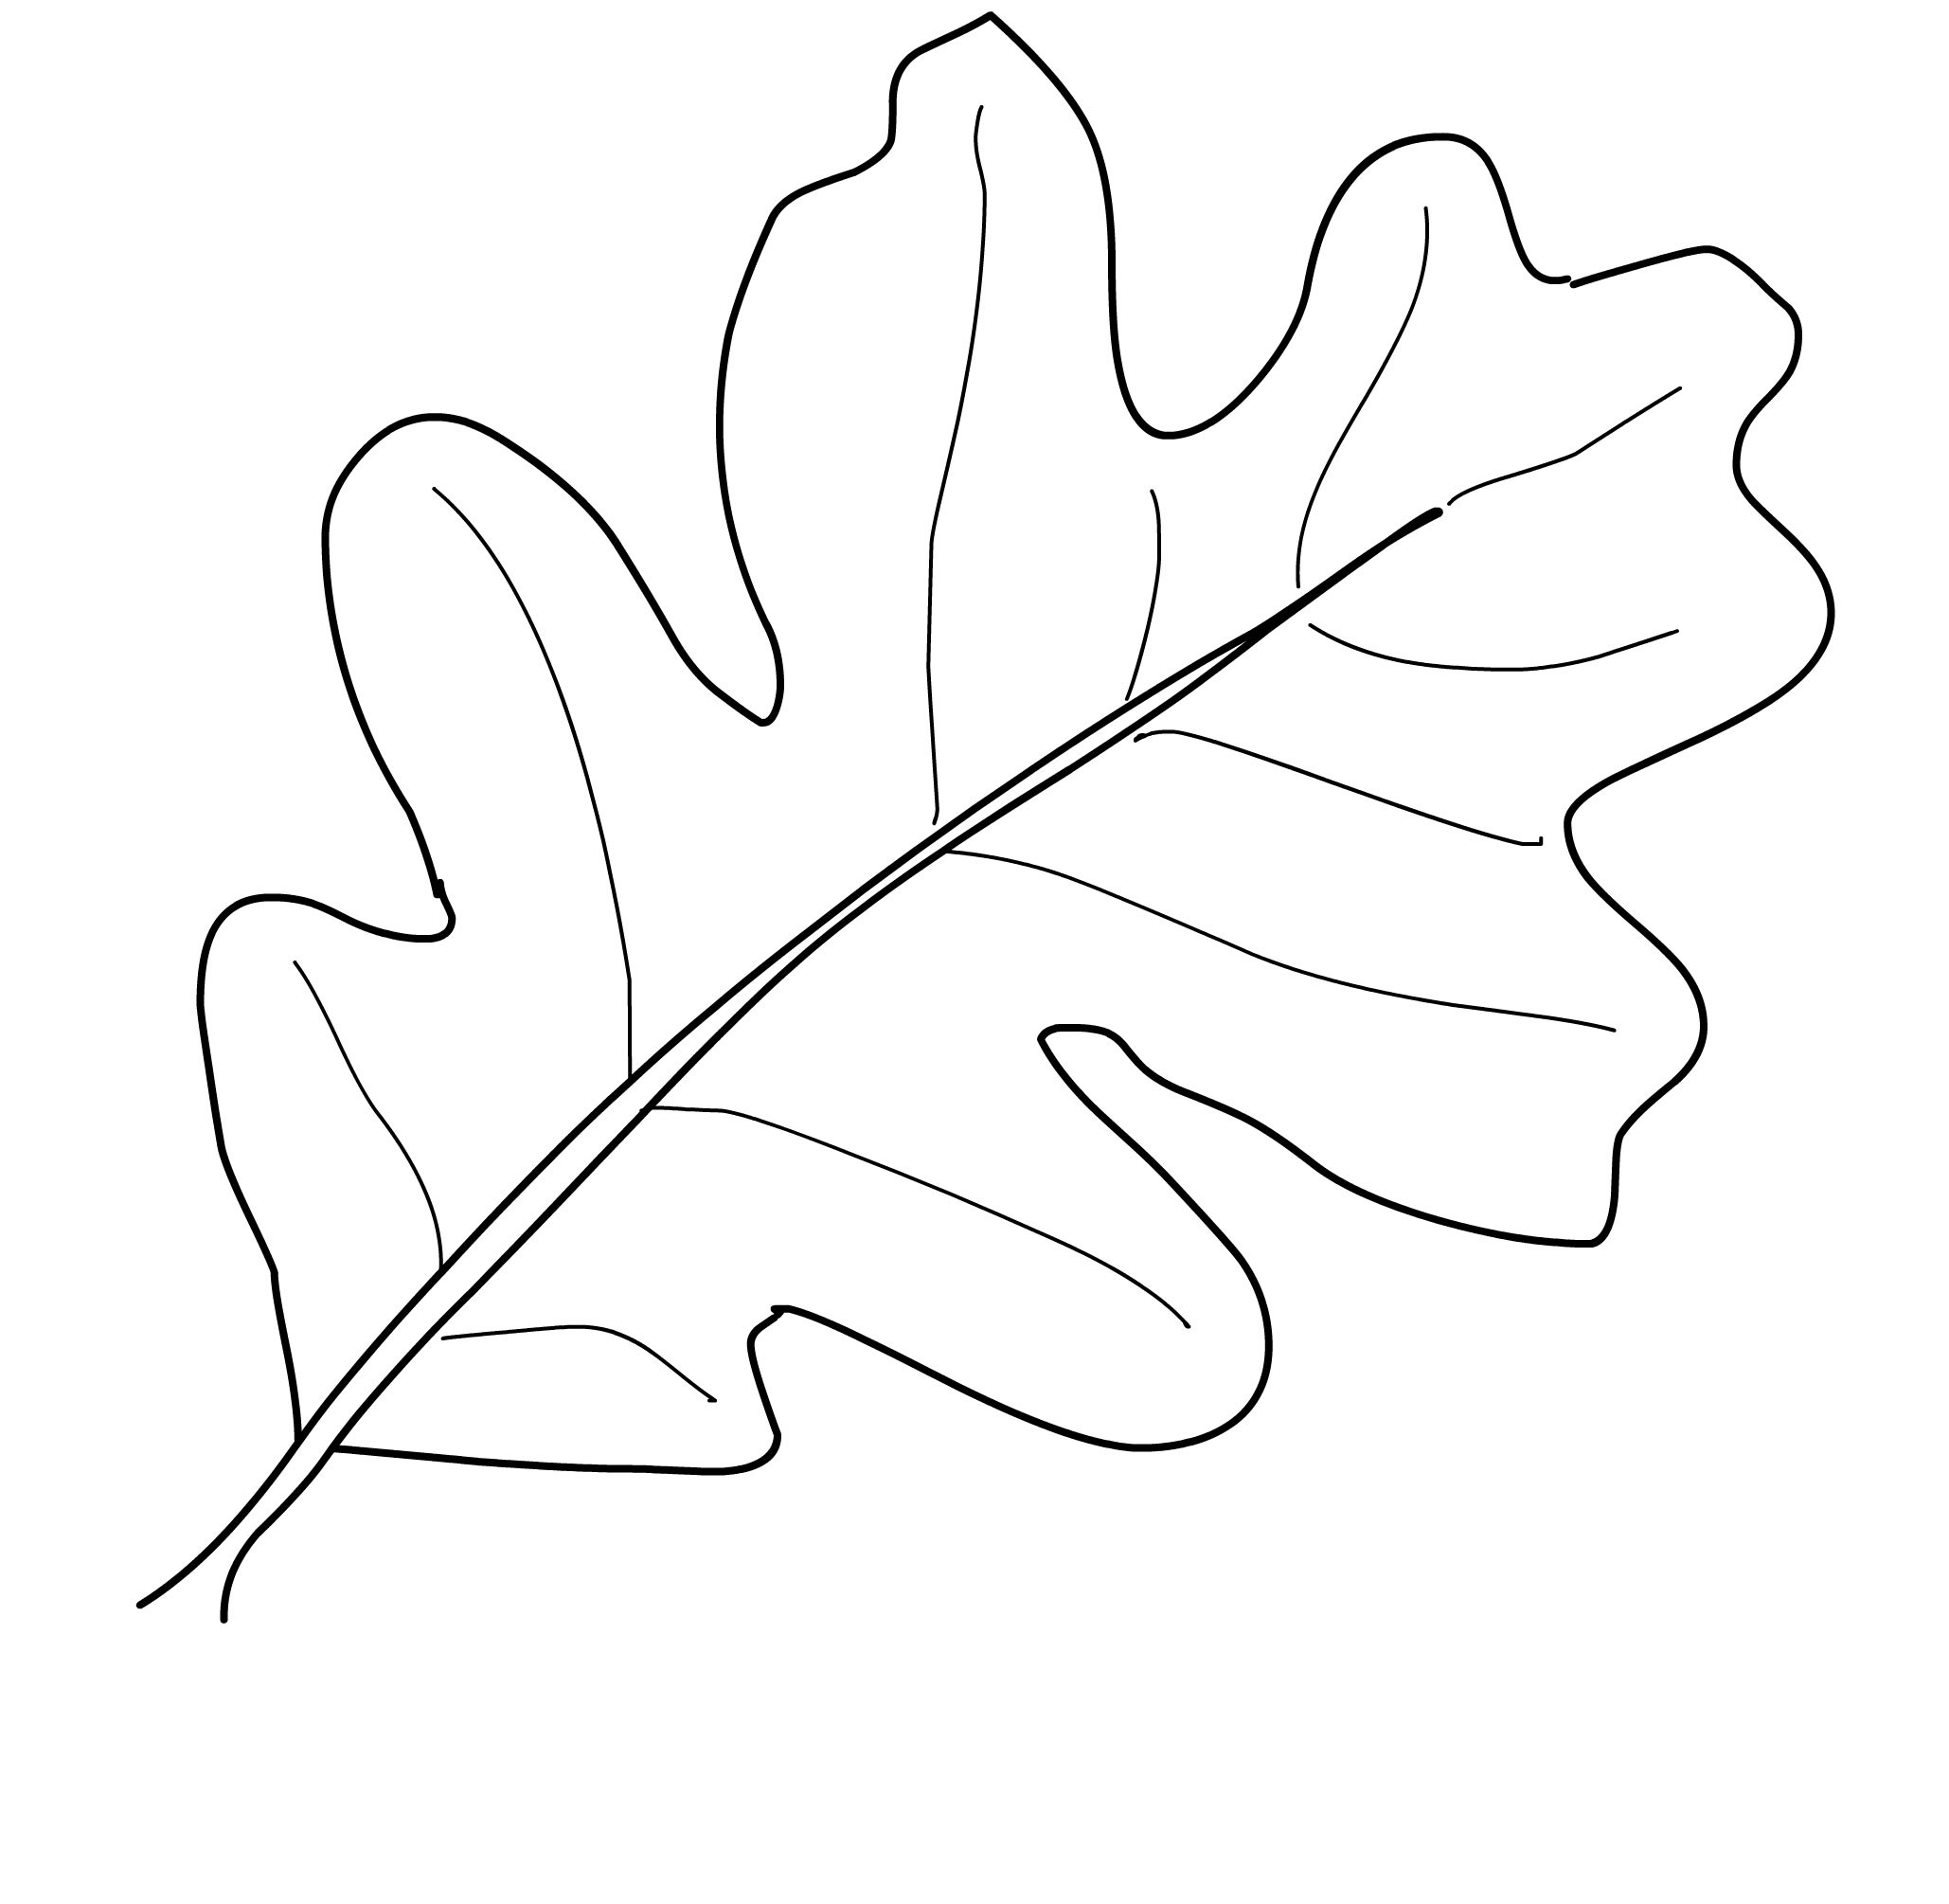 Oak leaf drawing template at getdrawings free for personal use 2058x2010 oak leaf nature coloring page for kids inspirational leaf template maxwellsz